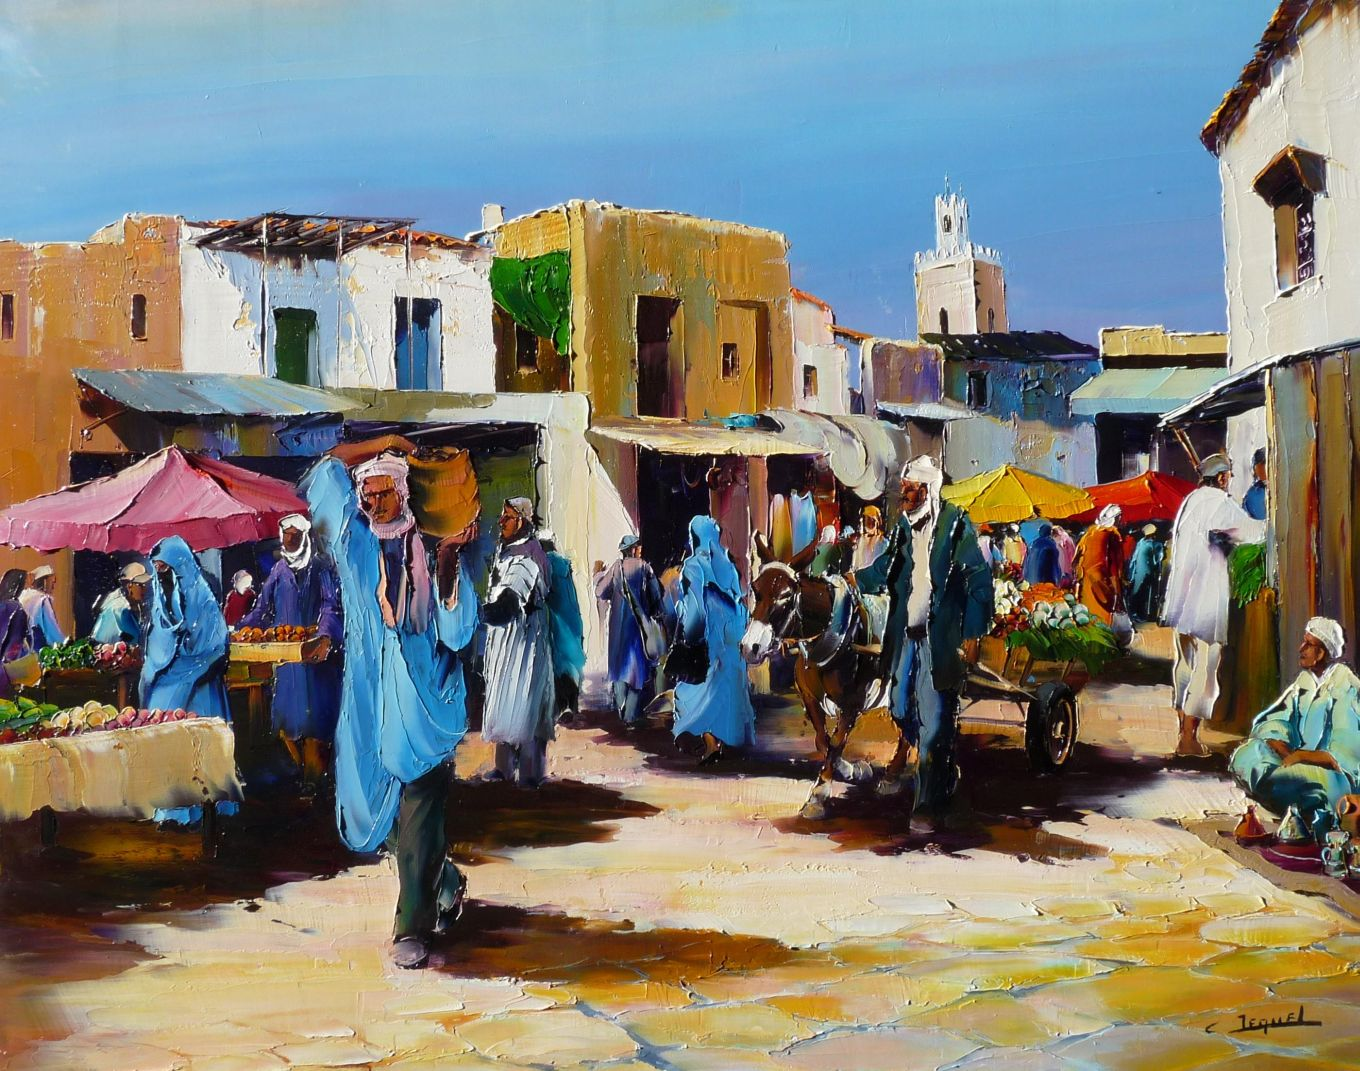 The Taroudant market